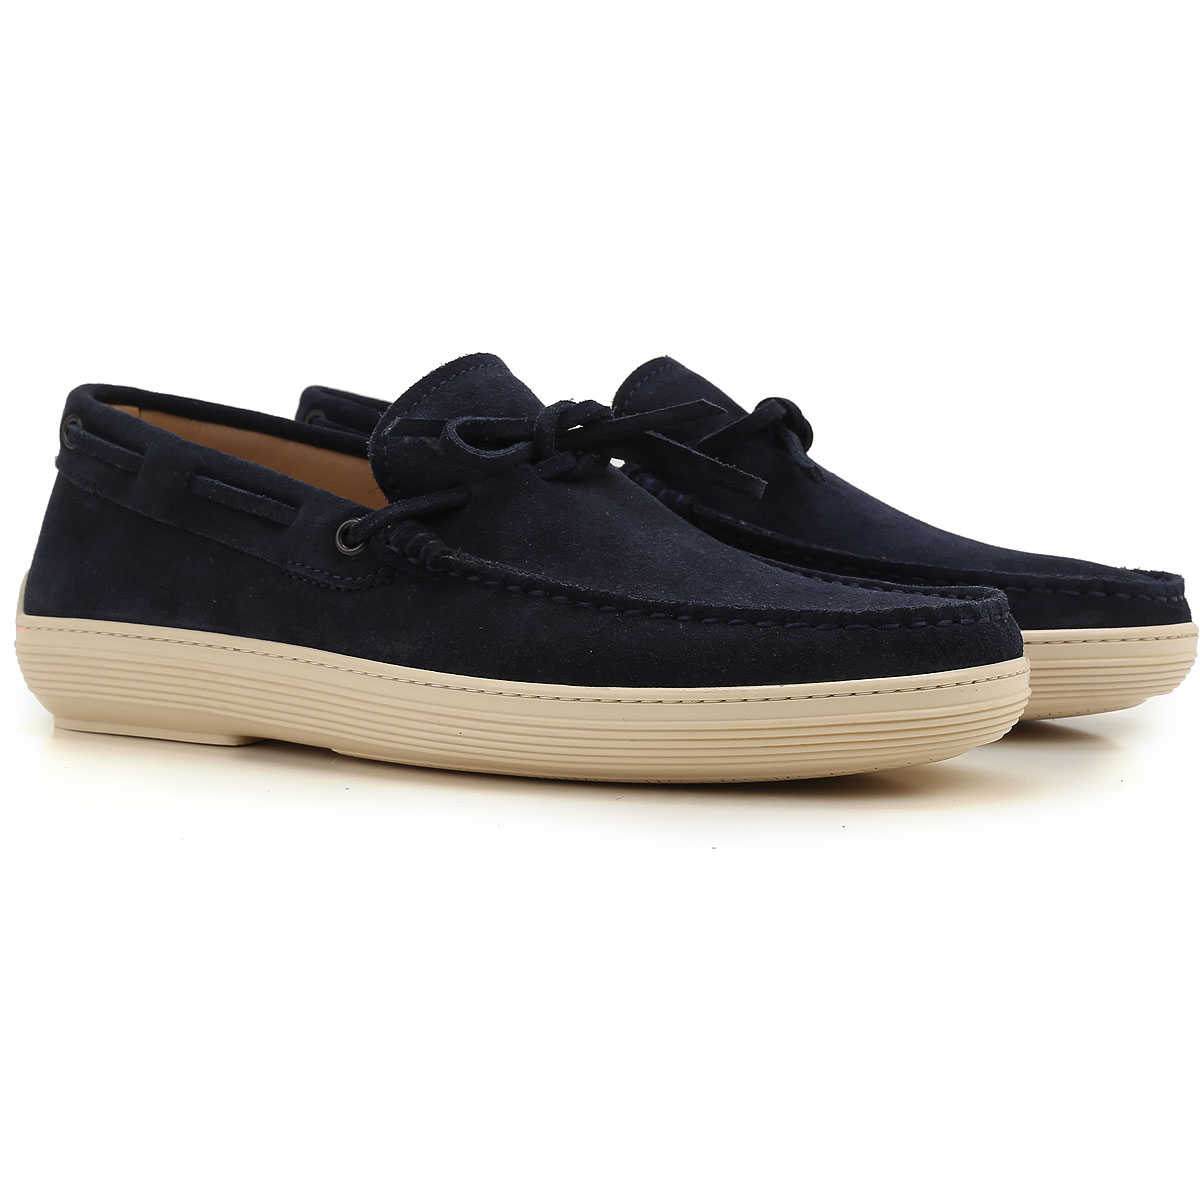 Tods Boat Shoes for Men